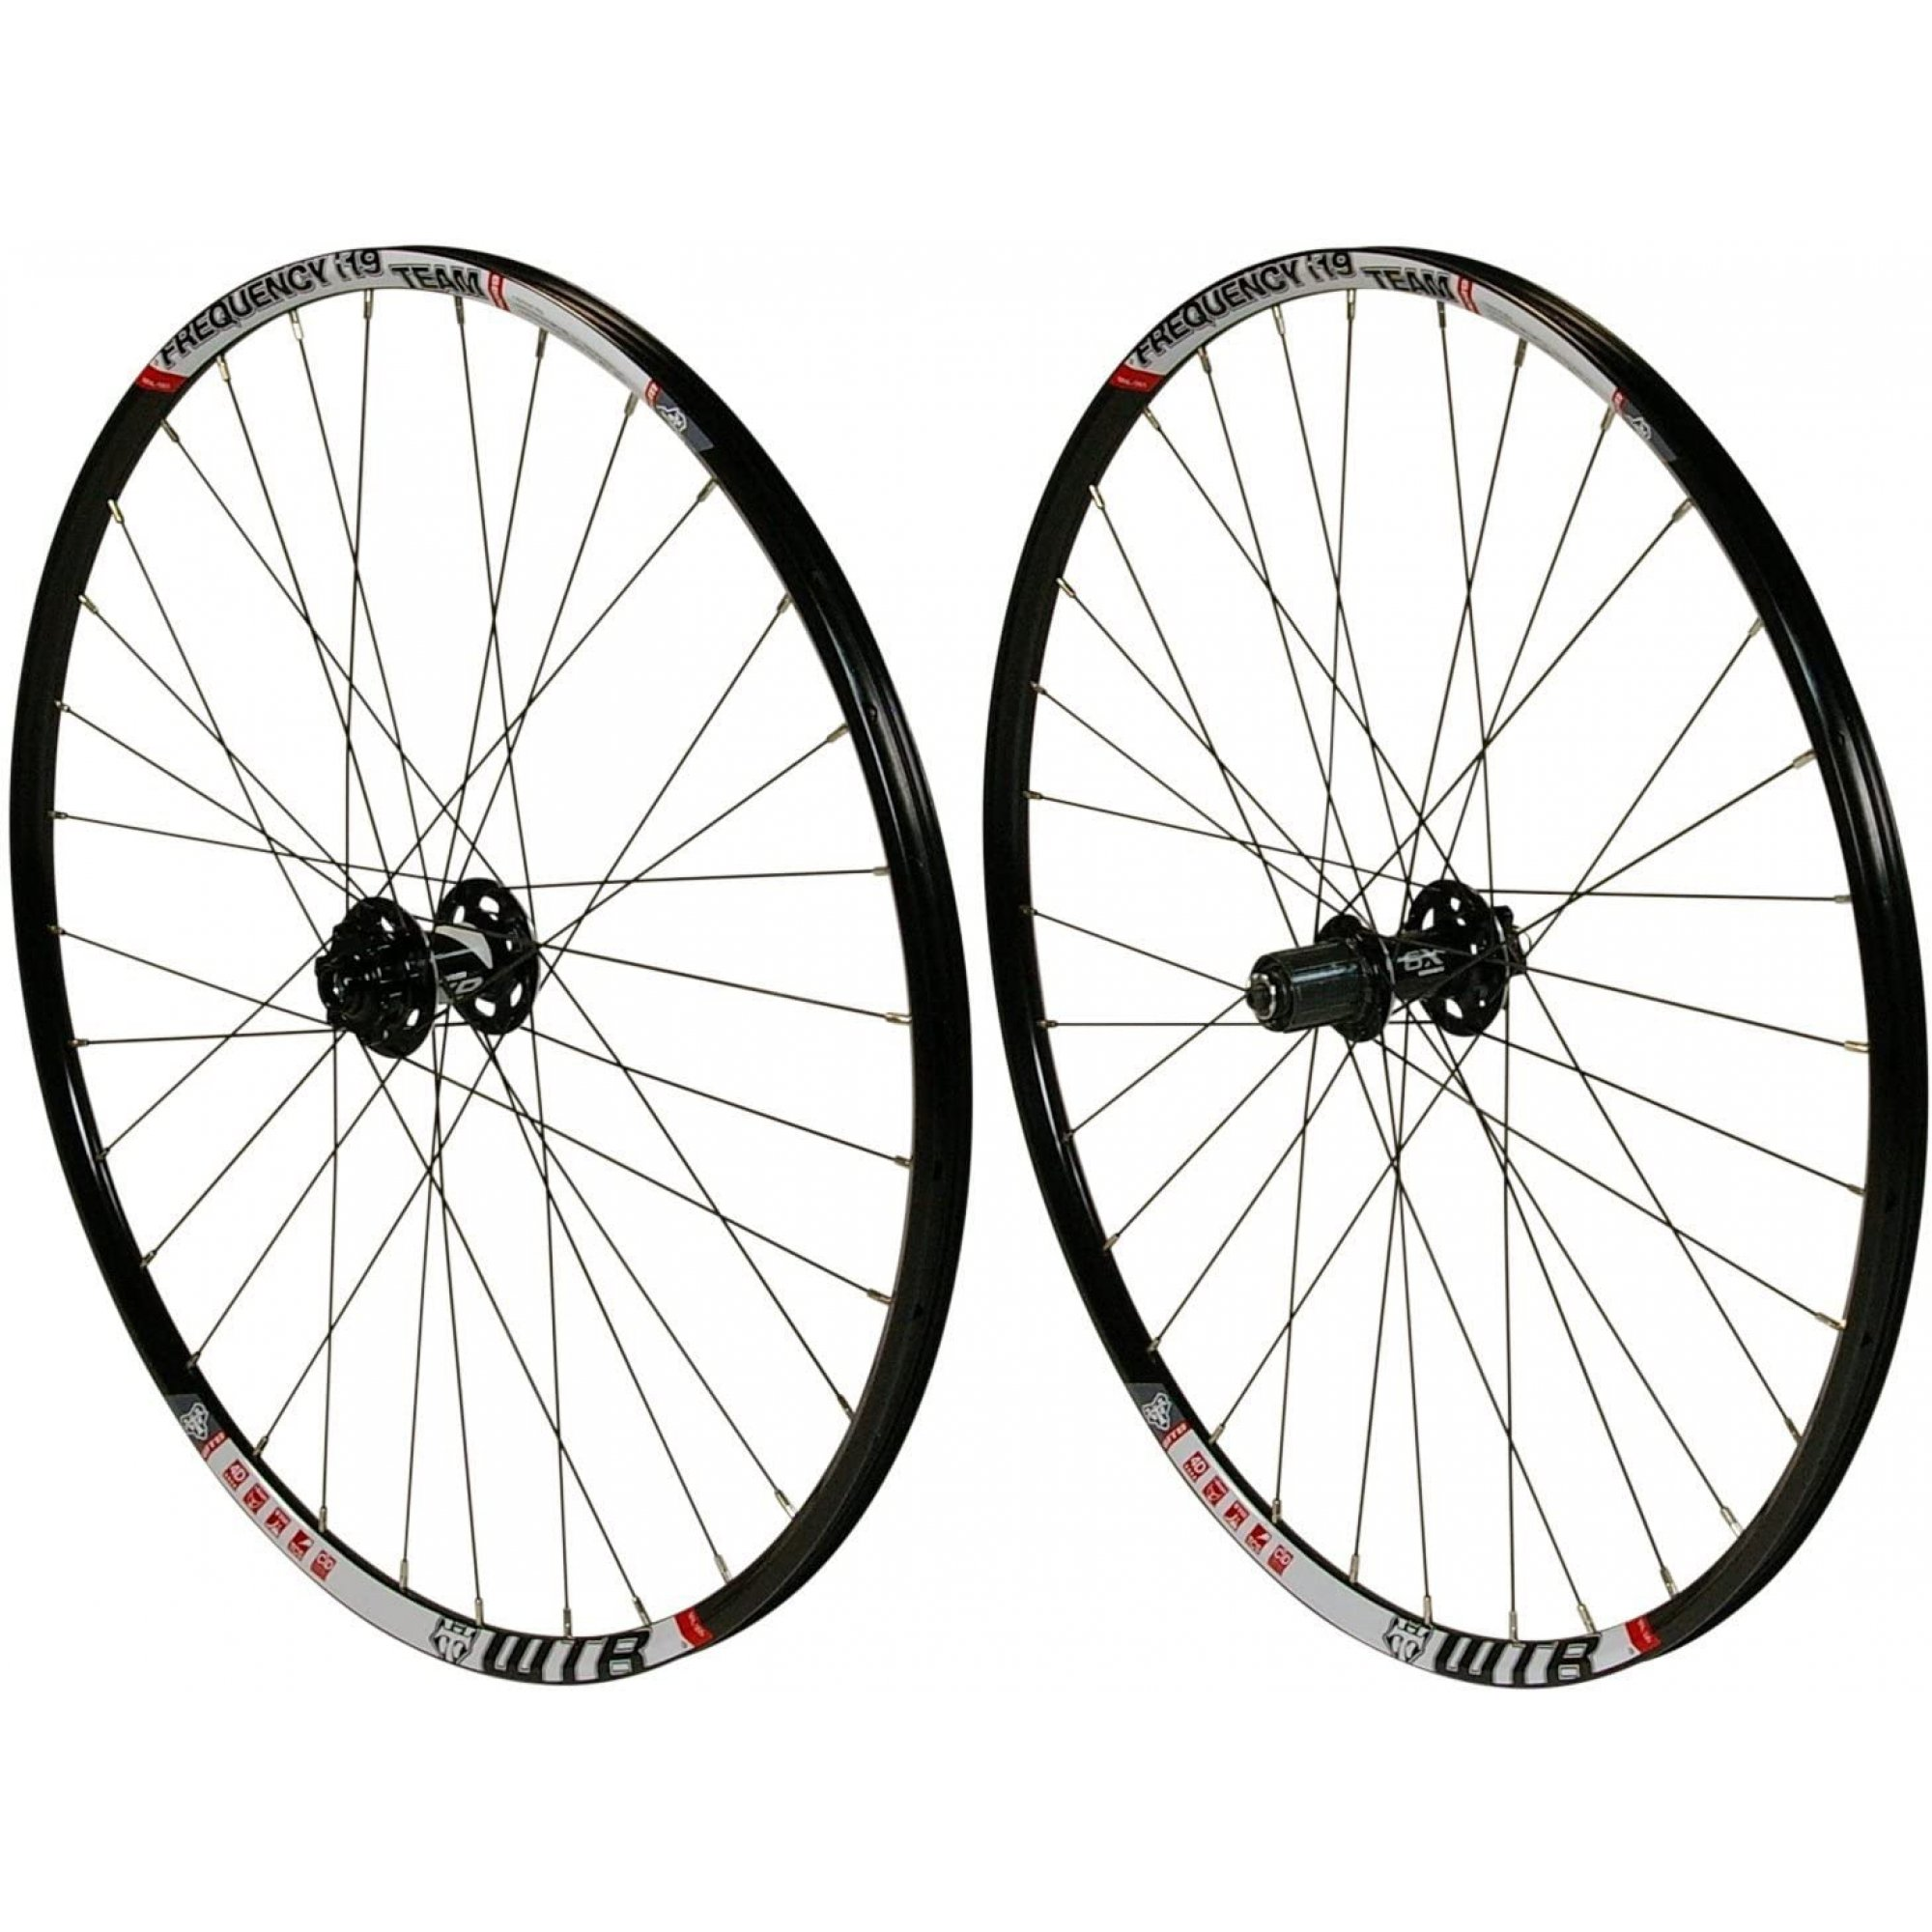 капли WTB MTB FREQUENCY i19 tcs disc 27.5""